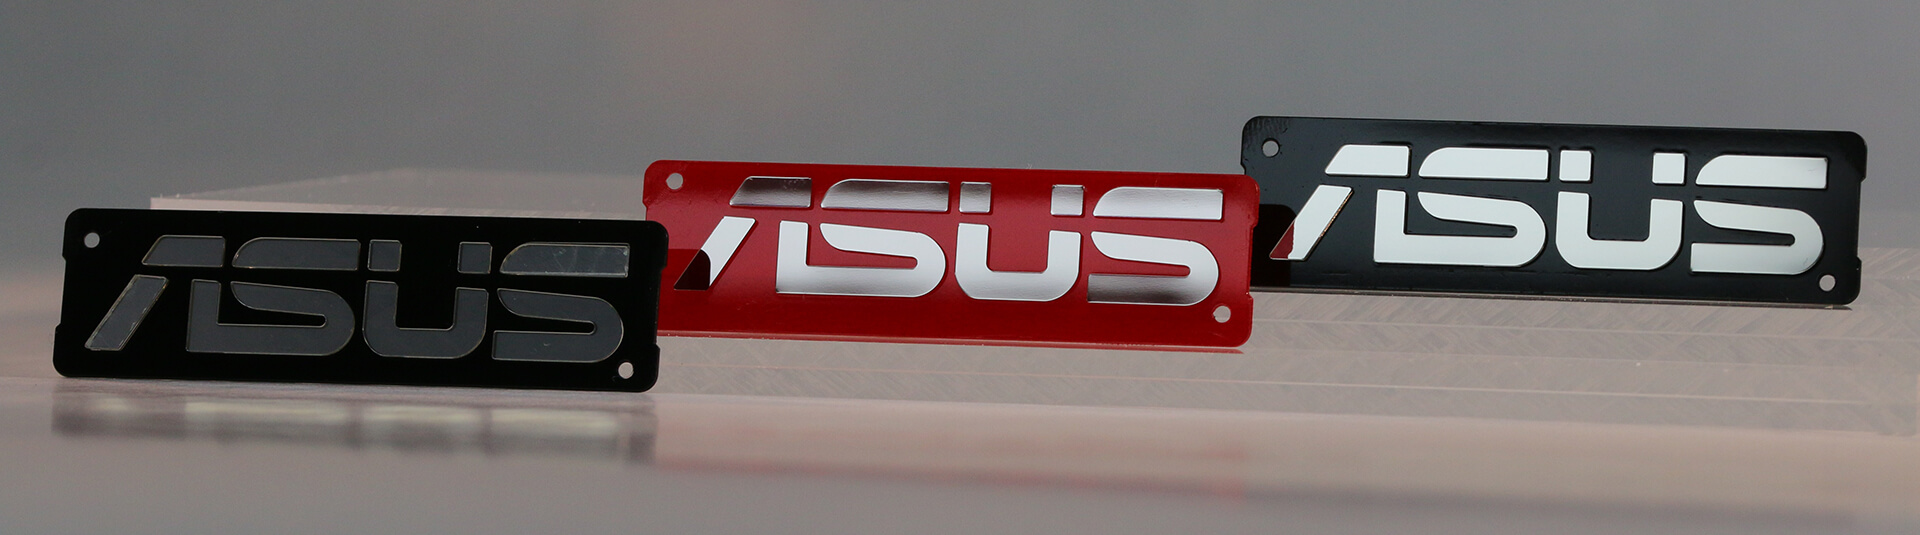 Three Asus Laptop Logos